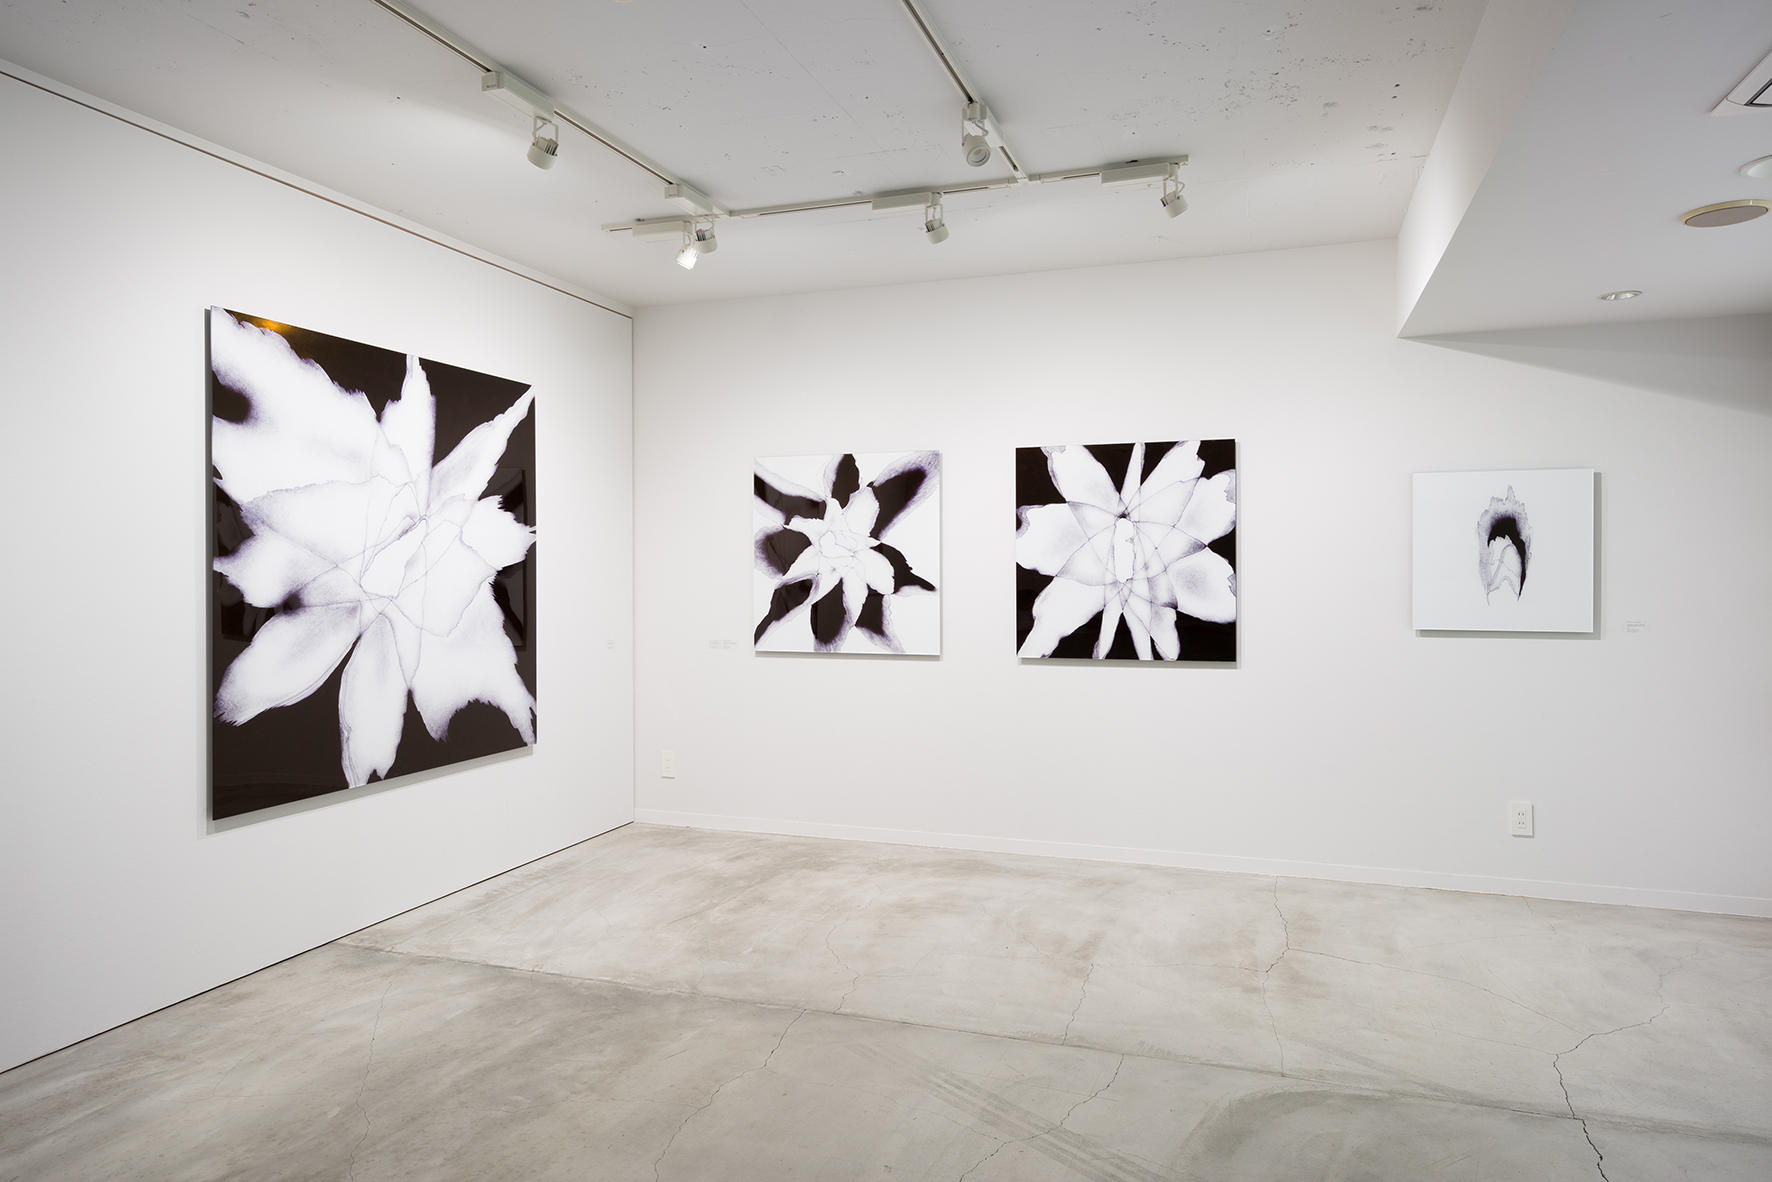 The installation view of solo show: Following the Shadow, in 2015